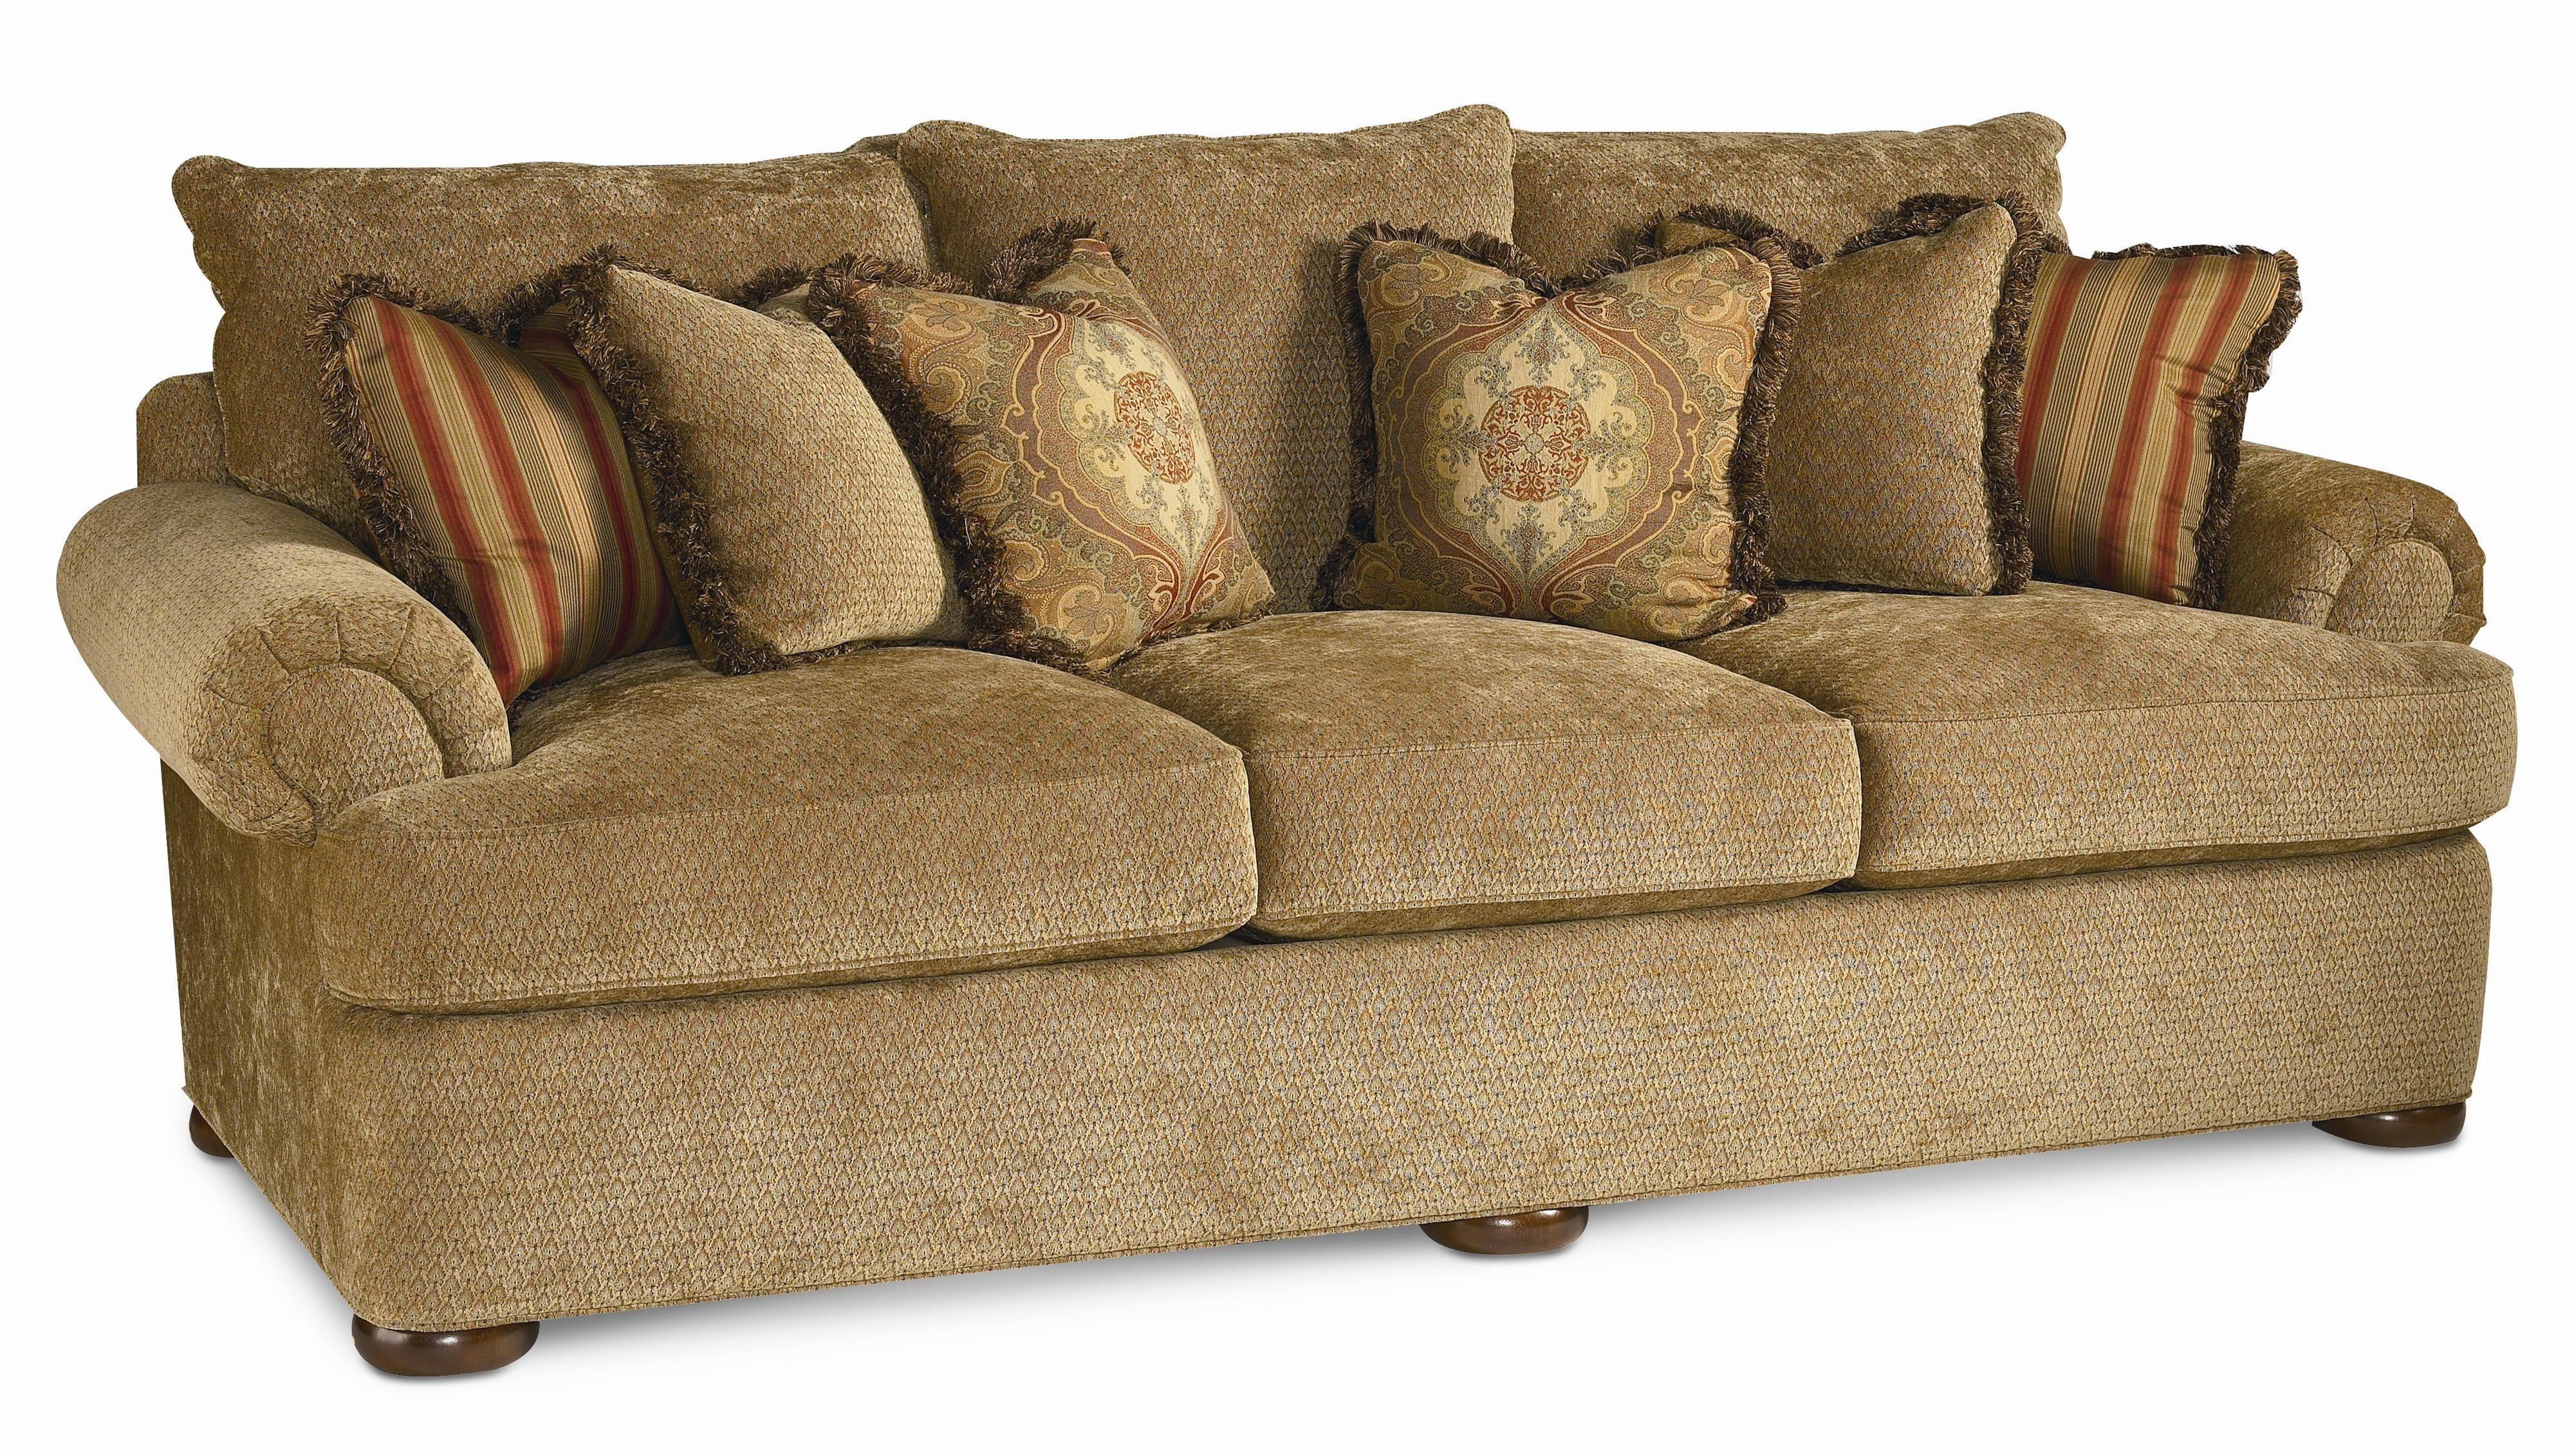 Special Values Dolce Vita Dolce Vita 3 Seat Sofa by Thomasville